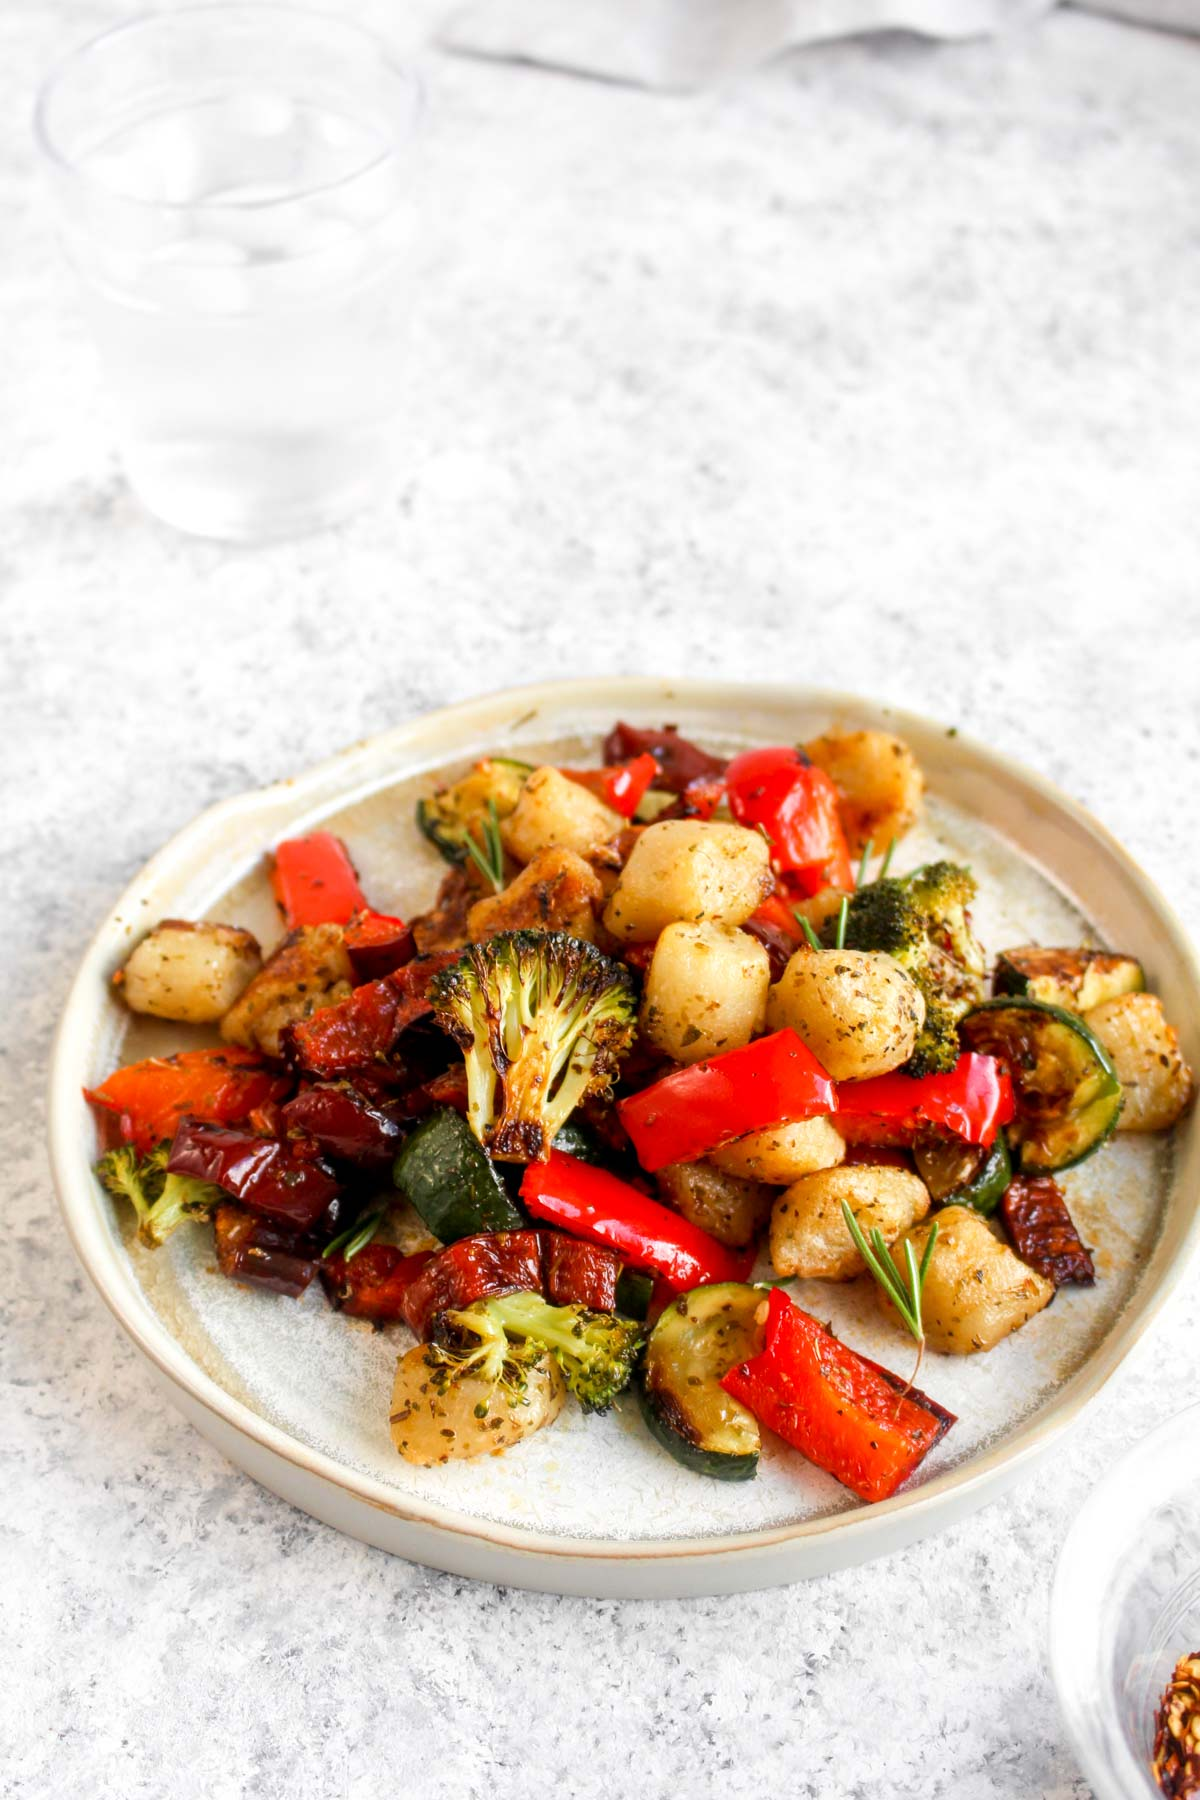 Cauliflower Gnocchi Sheet Pan Meal plated with vegetables and rosemary.